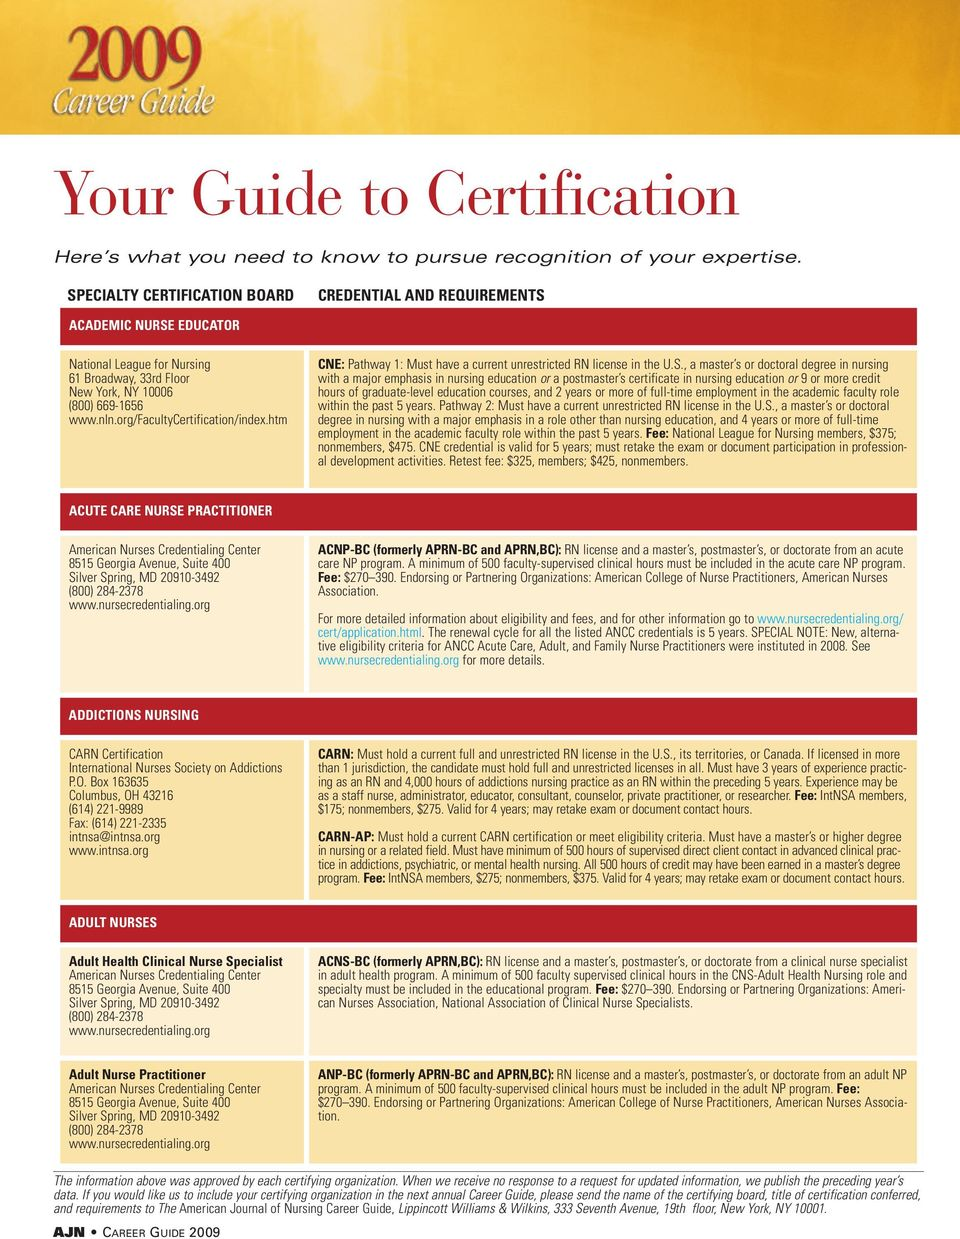 org/facultycertification/index.htm CNE: Pathway 1: Must have a current unrestricted RN license in the U.S.